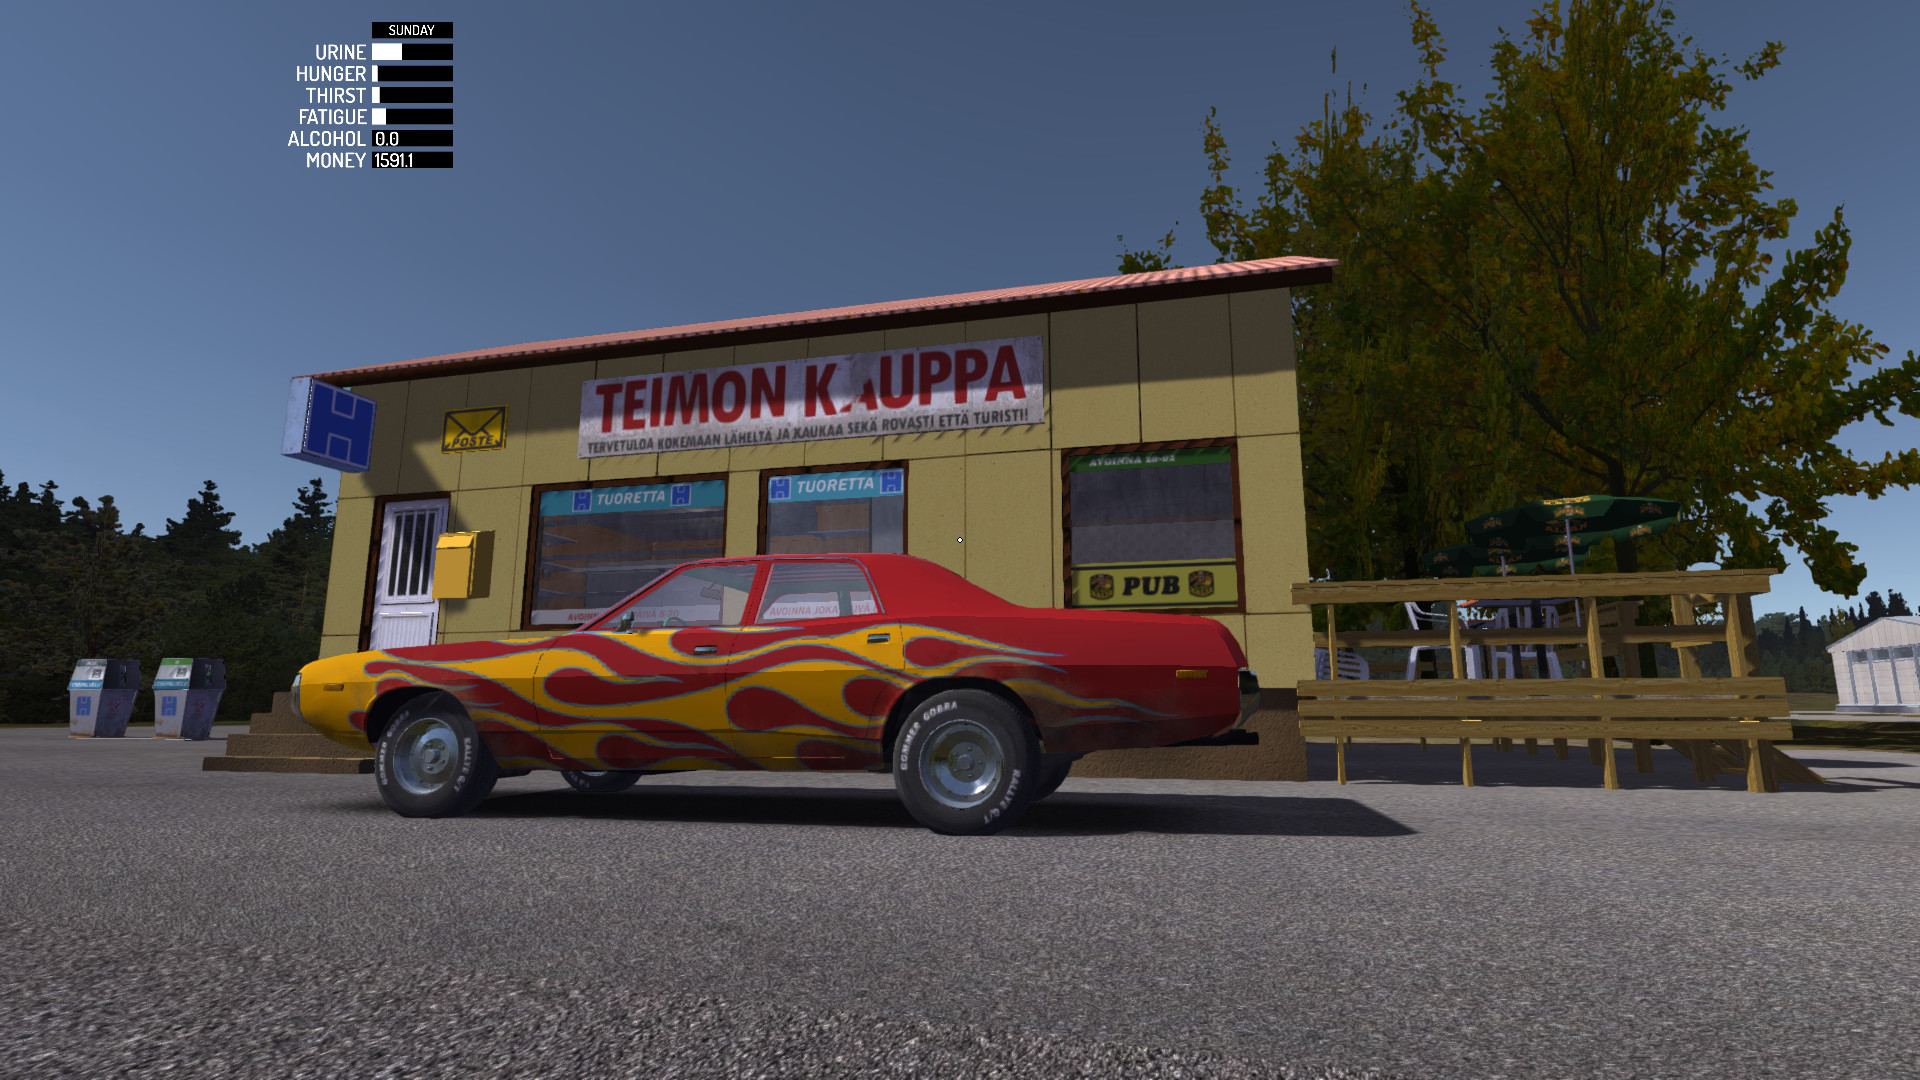 My Summer Car February Update 2.jpg